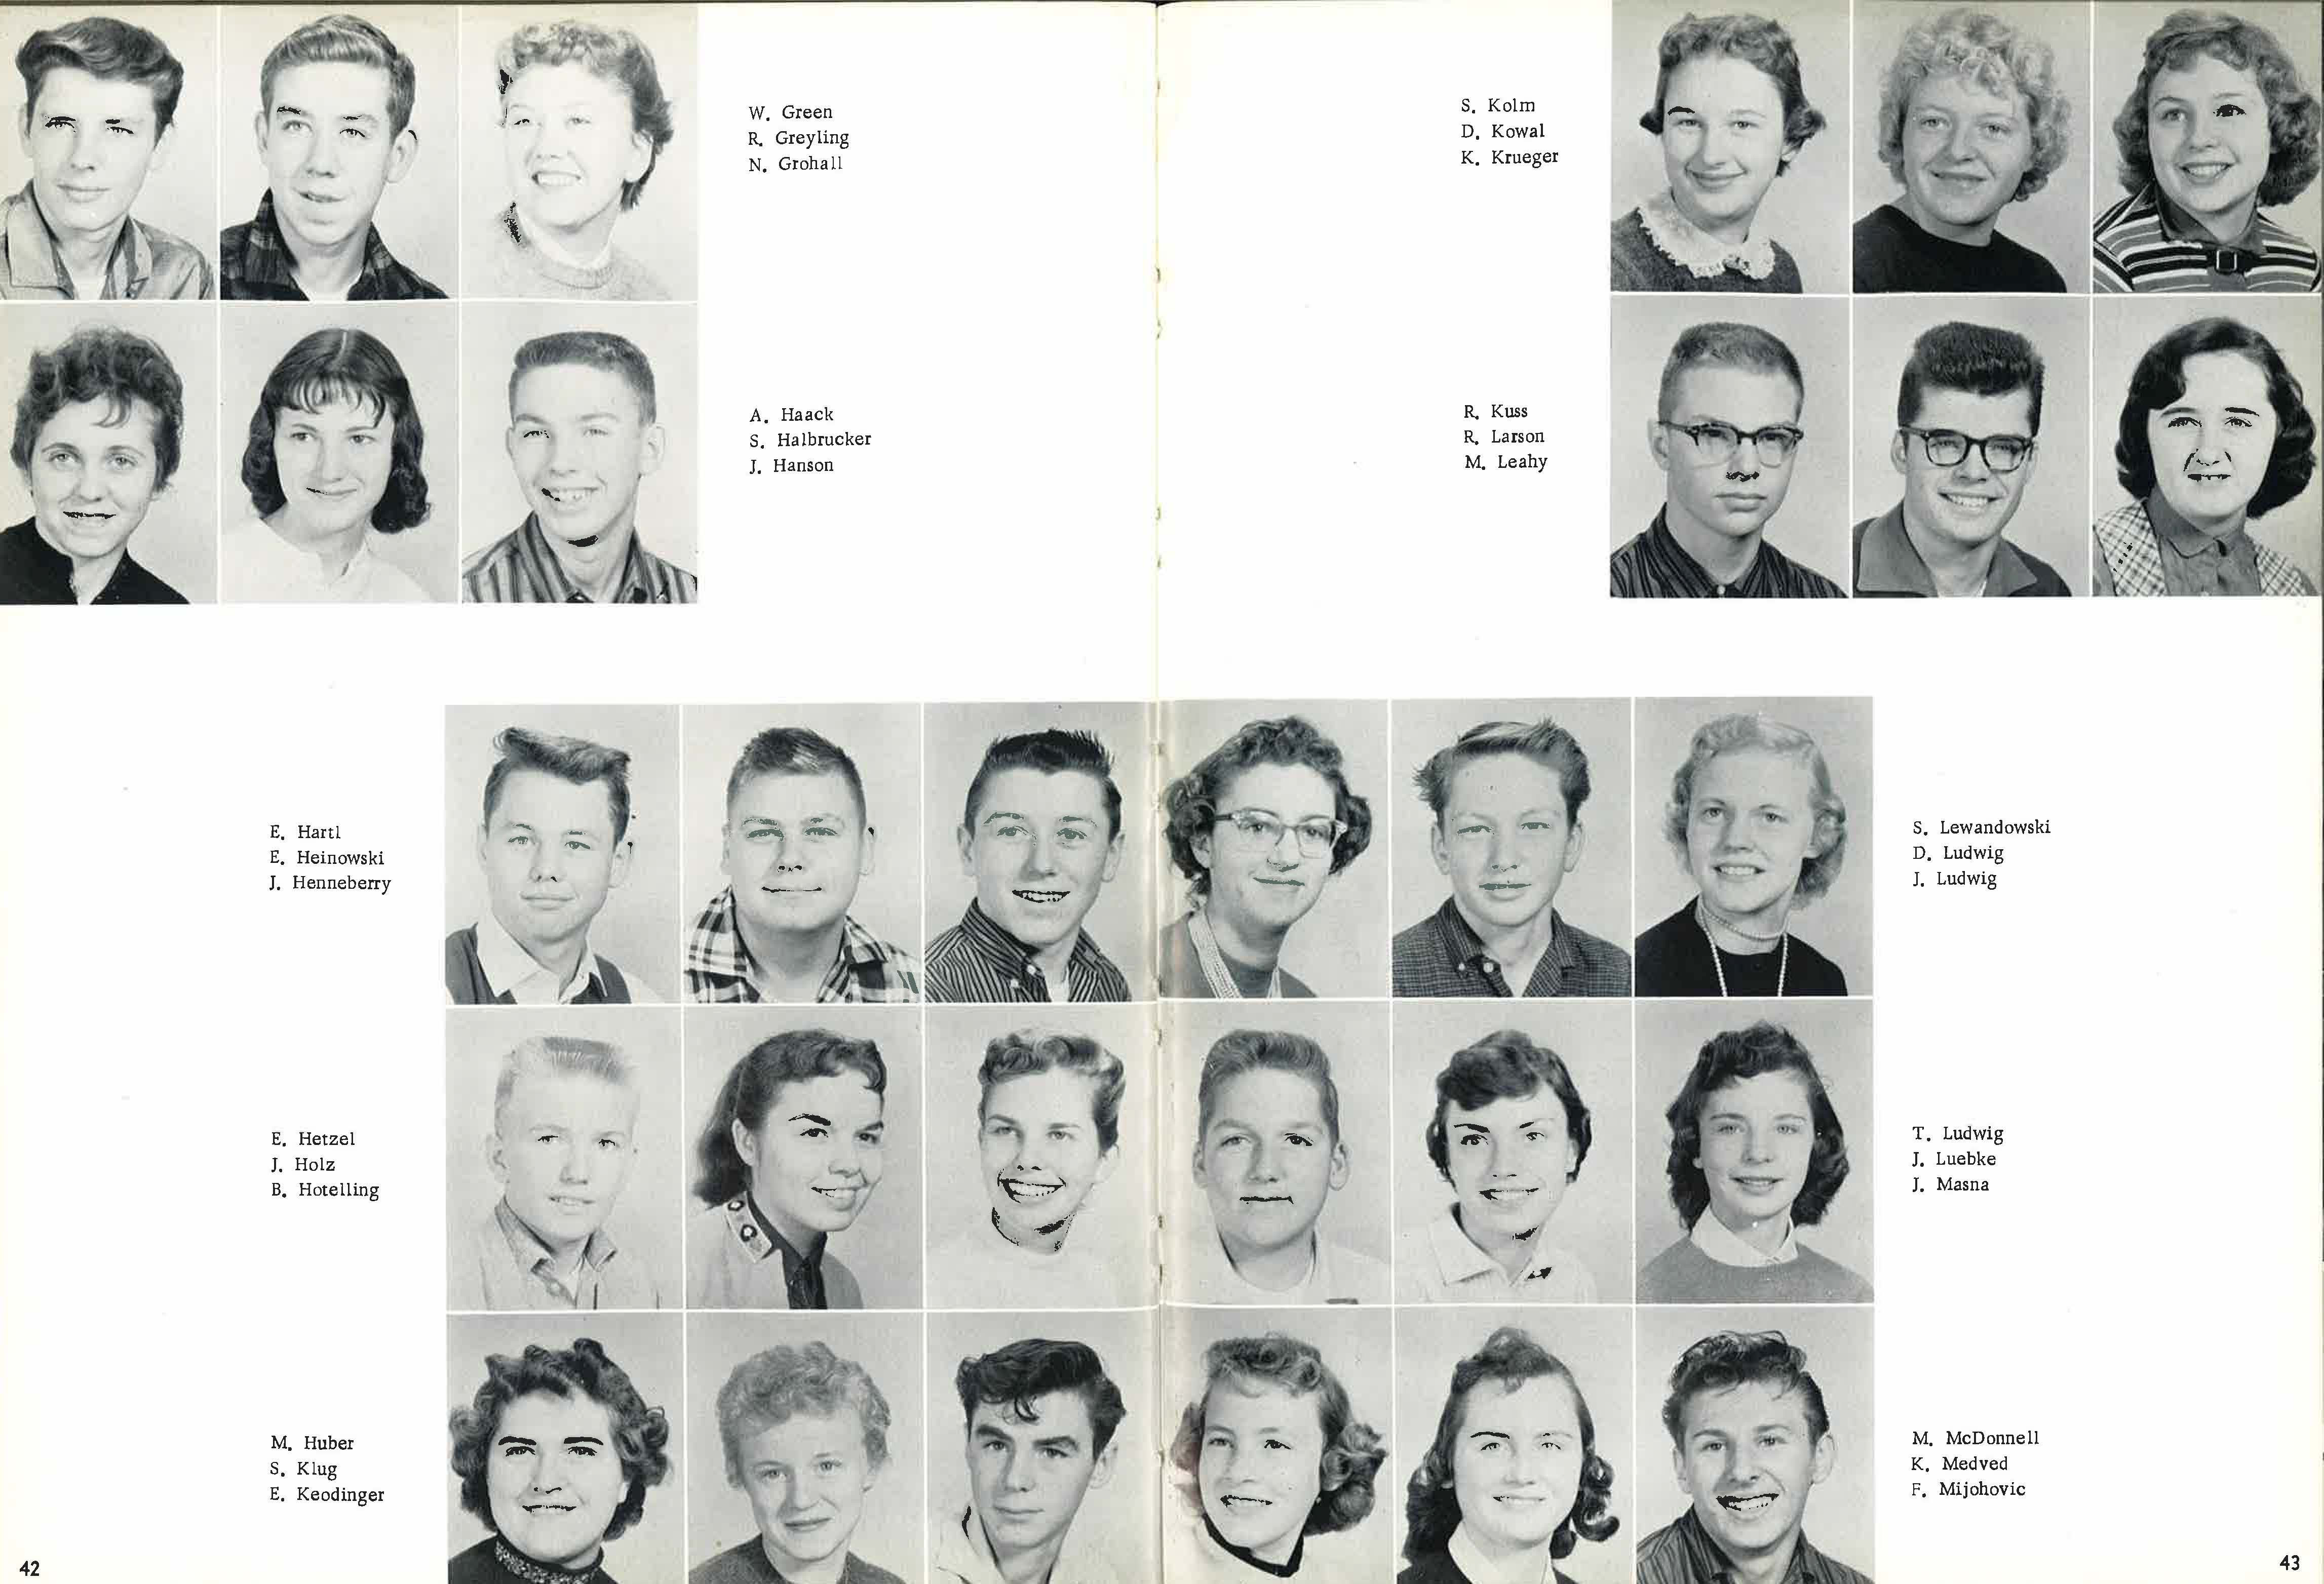 1958_Yearbook_42-43.jpg